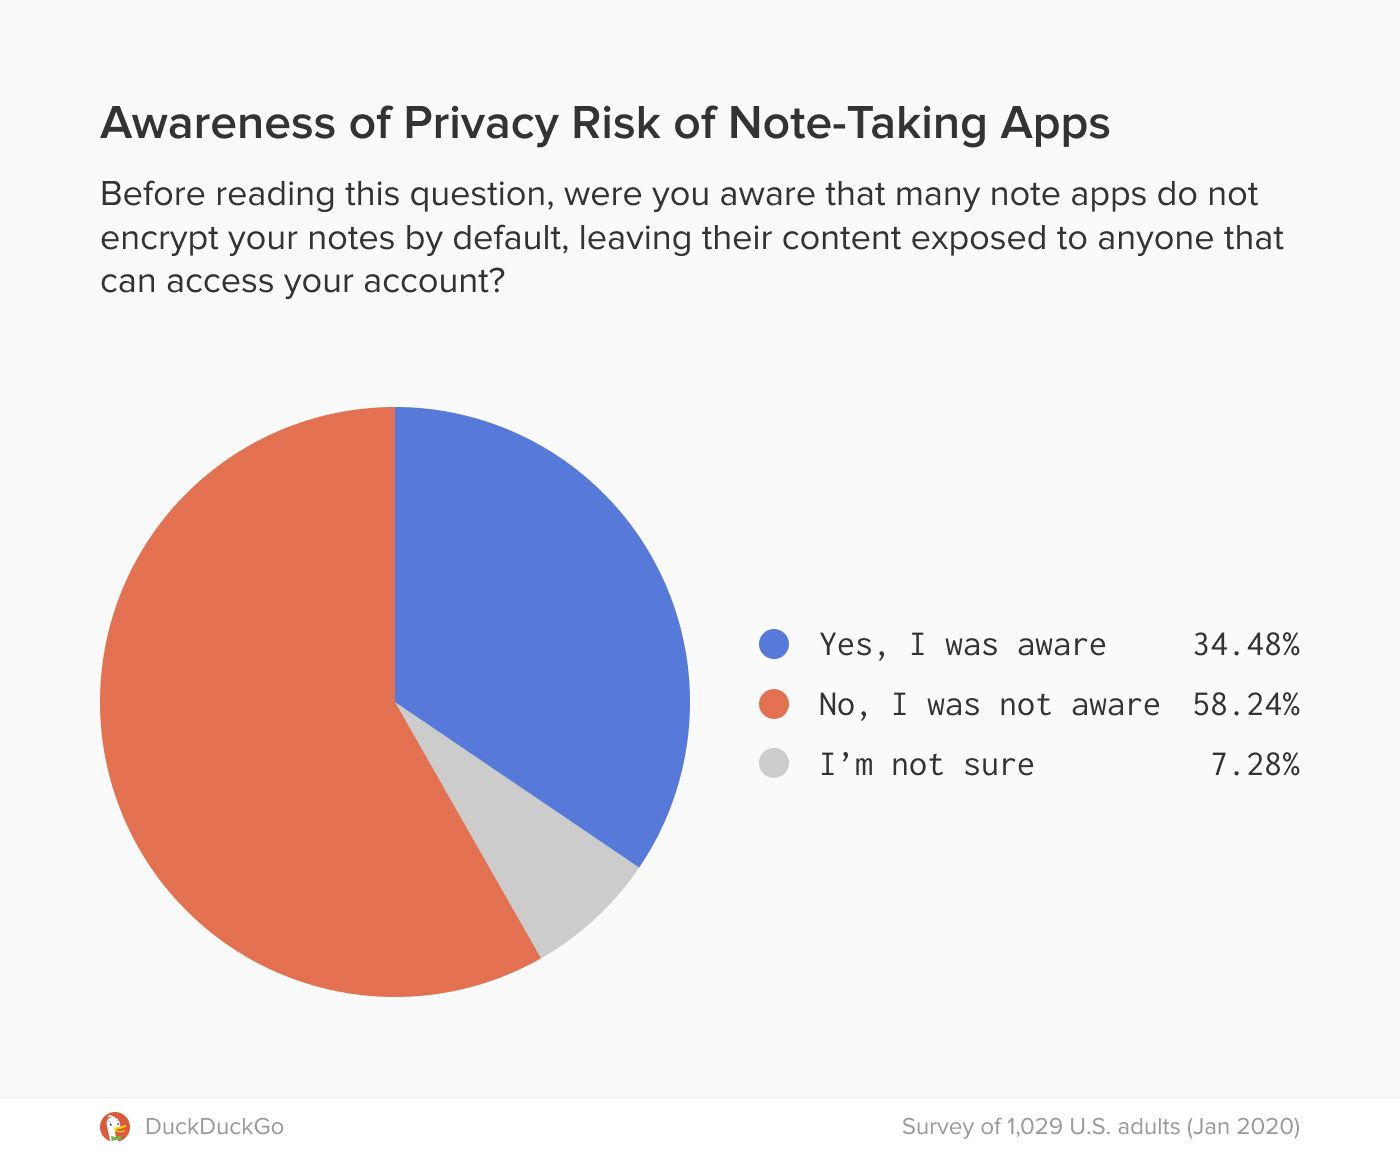 Pie chart depicting awareness of the privacy risk of note-taking apps